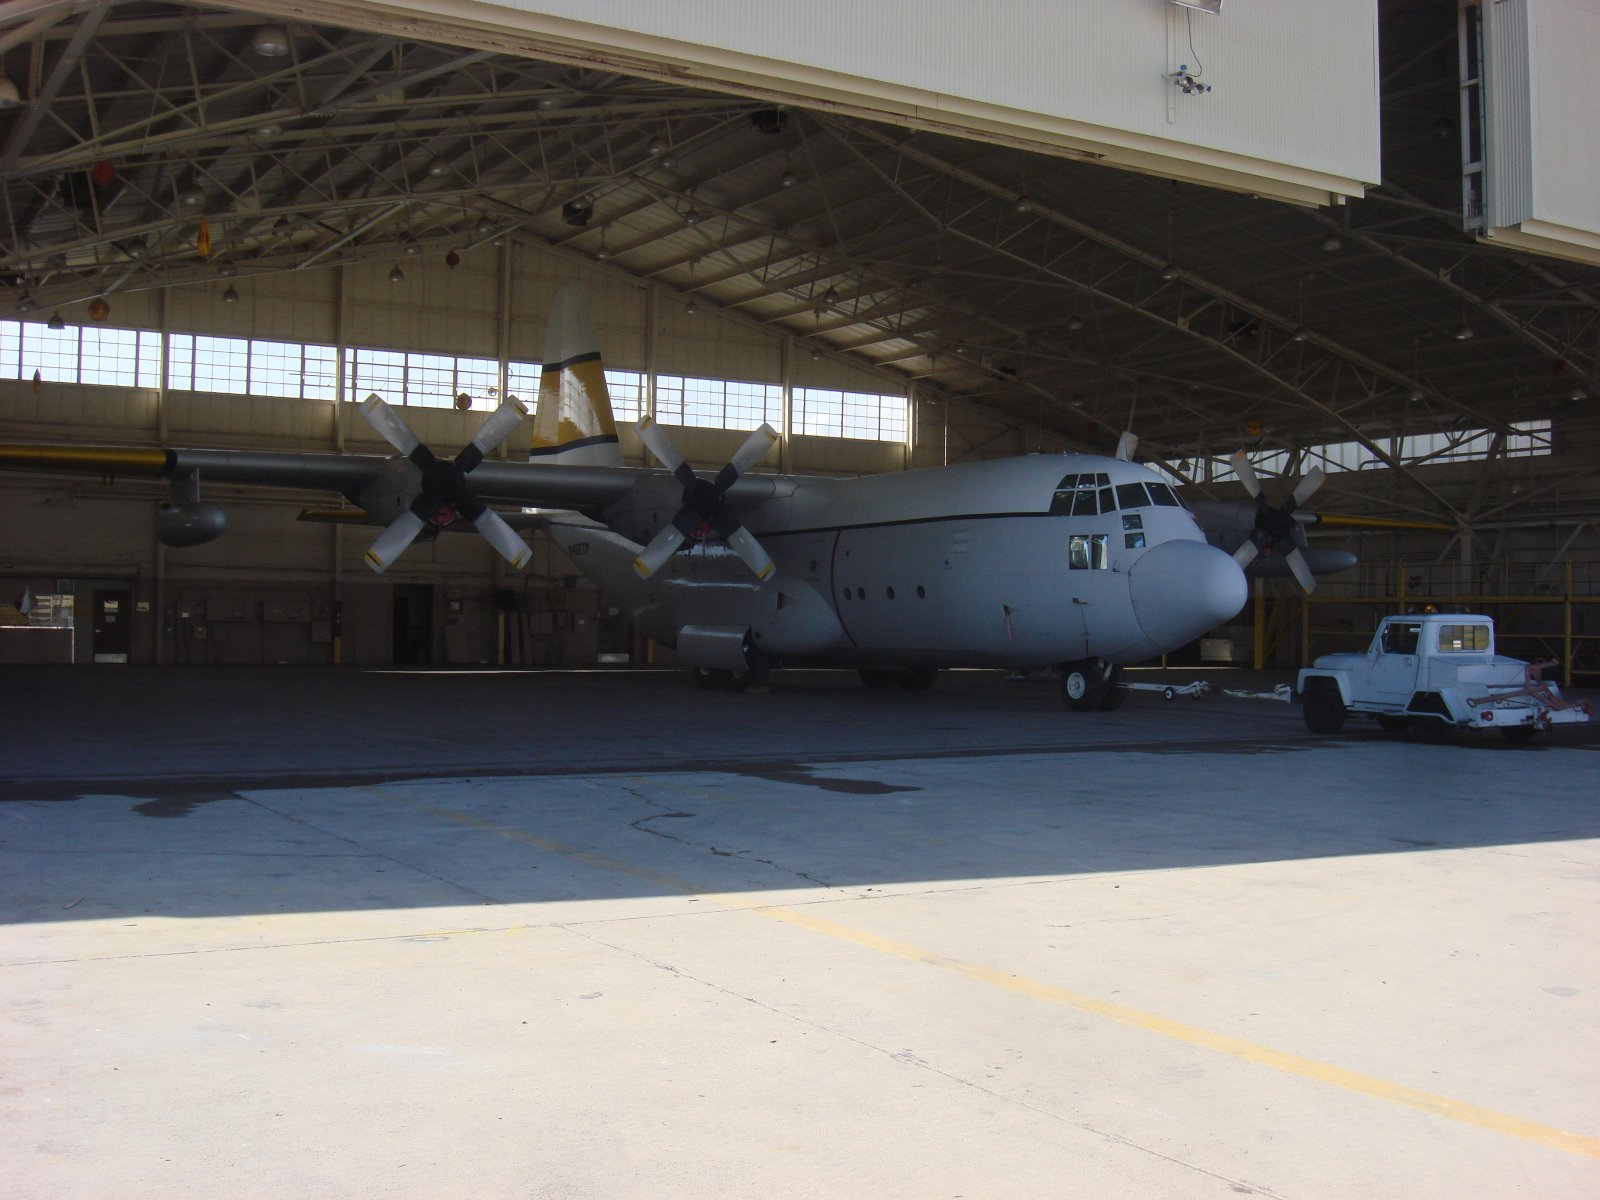 Click image for larger version  Name:C-130 first trip in hanger 009.jpg Views:54 Size:237.5 KB ID:188855